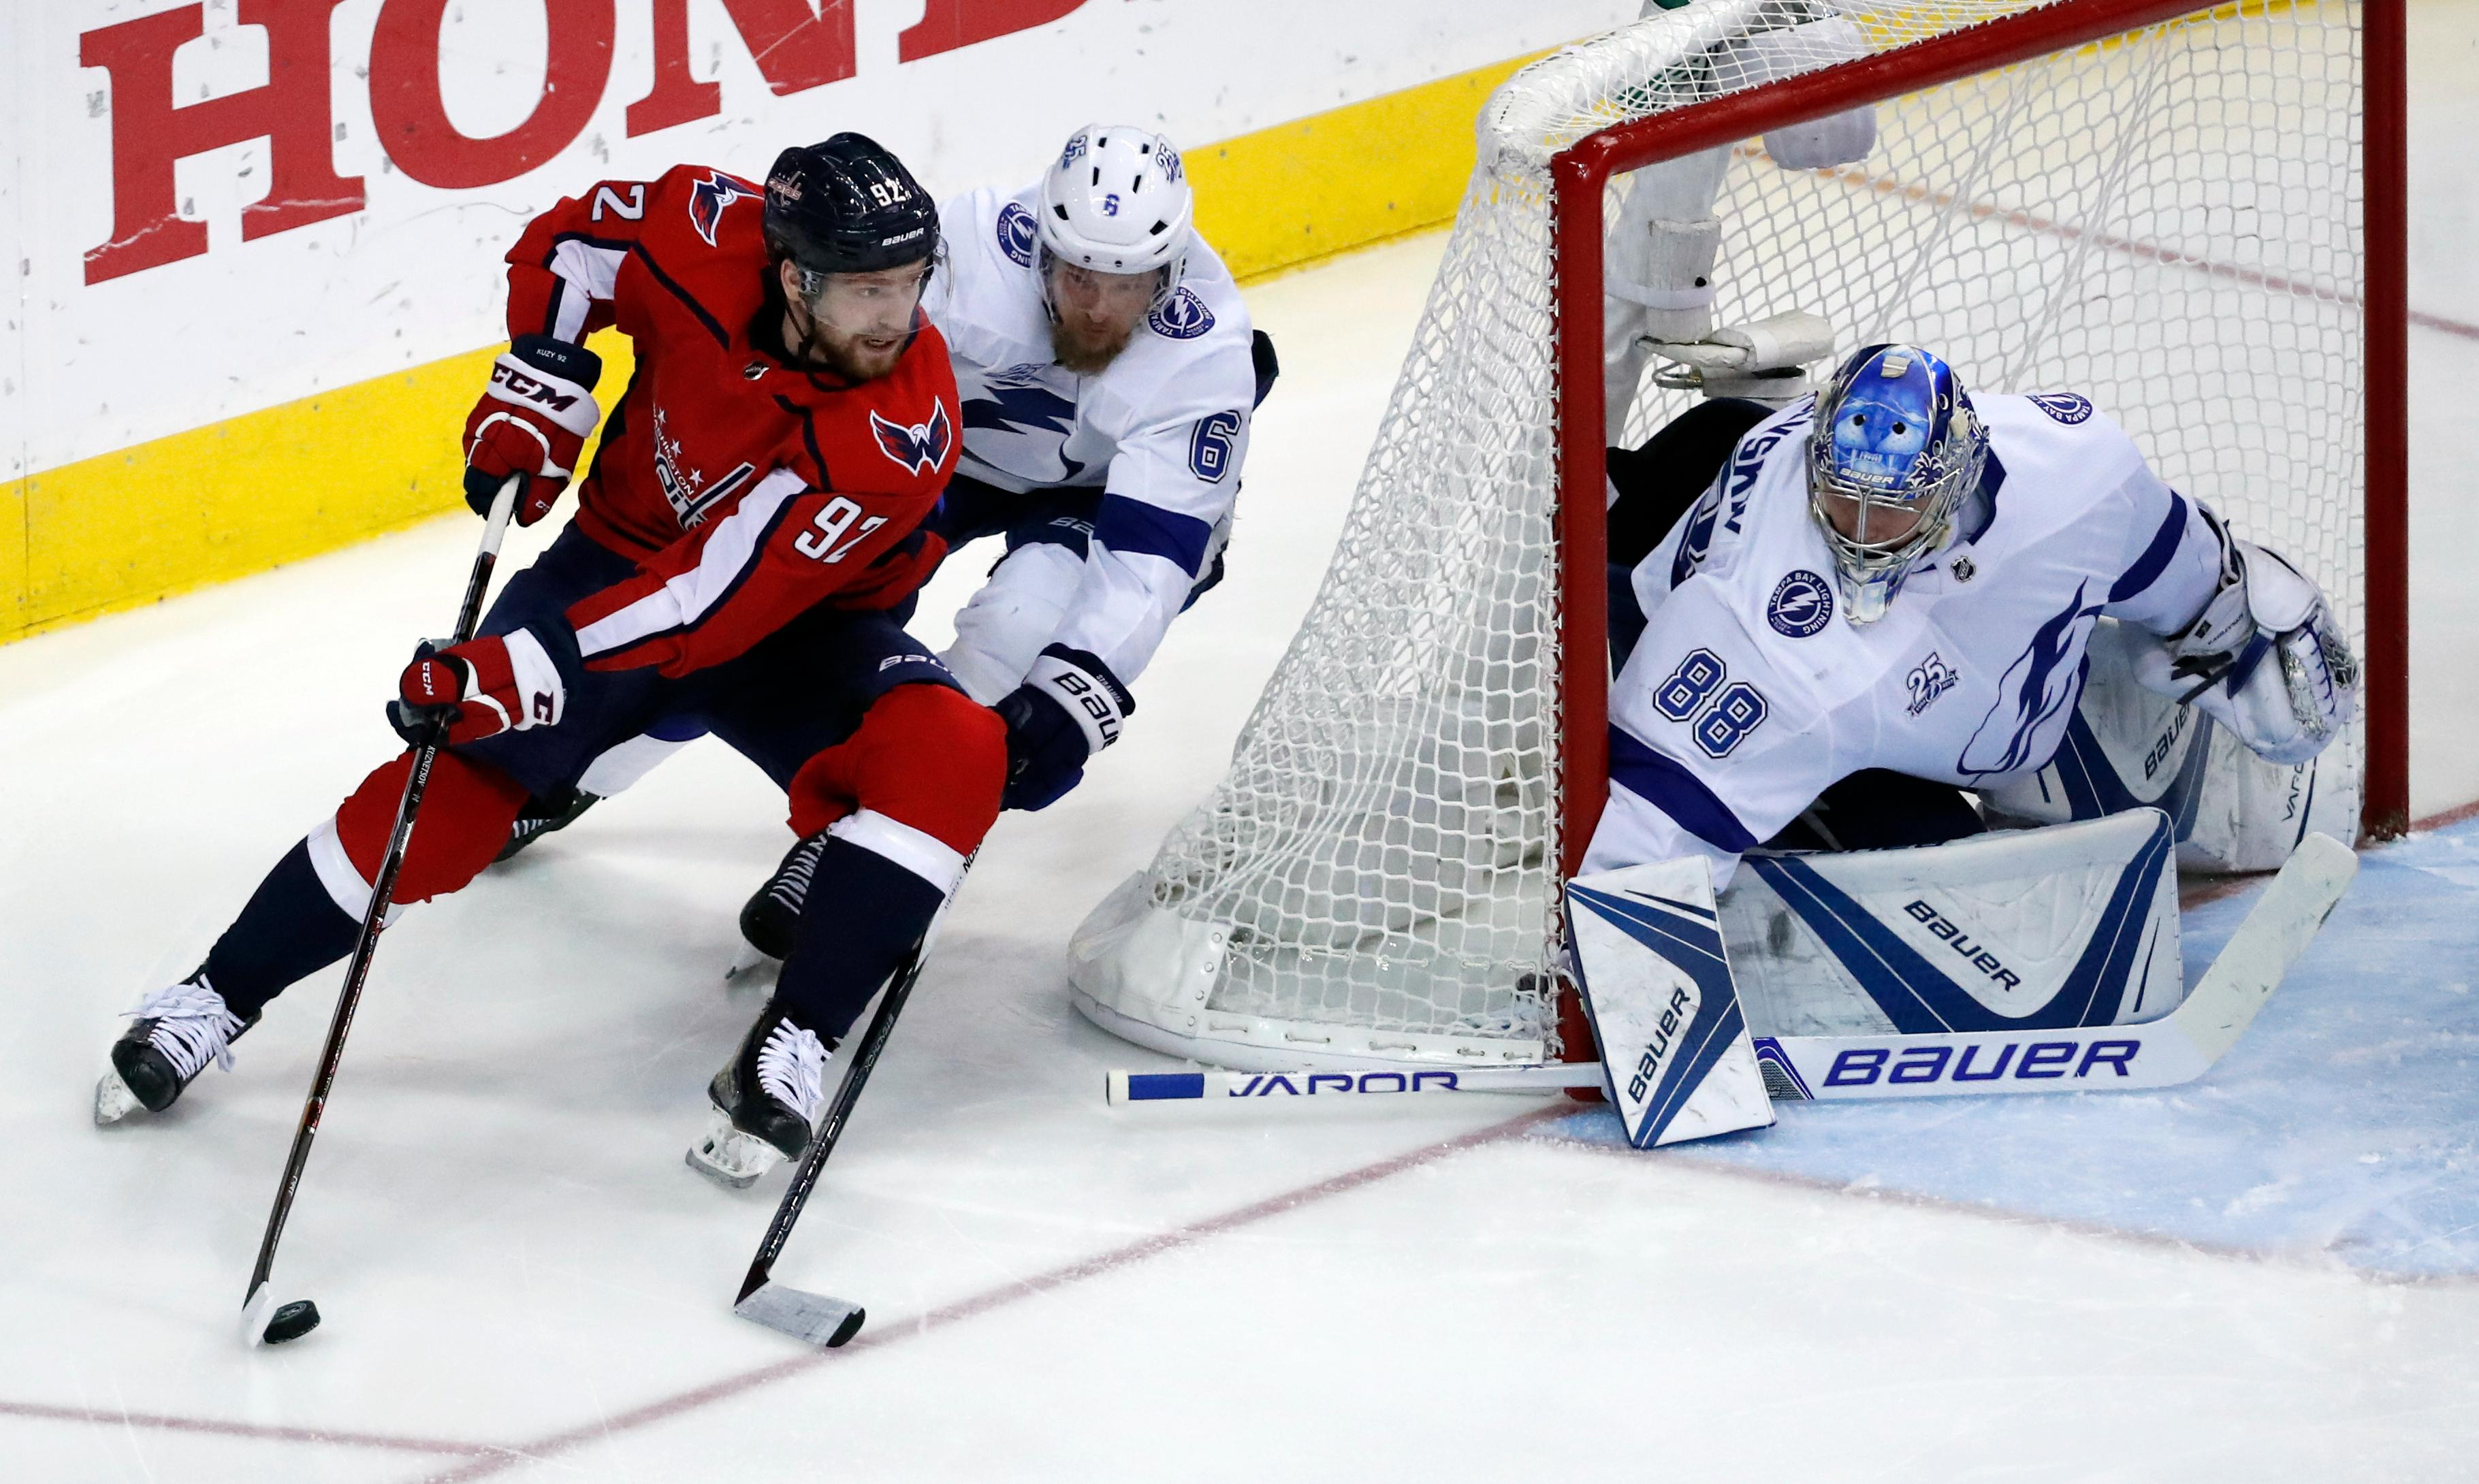 Washington Capitals center Evgeny Kuznetsov (92), from Russia, skates with the puck with Tampa Bay Lightning defenseman Anton Stralman (6), from Sweden, behind him with Tampa Bay Lightning goaltender Andrei Vasilevskiy (88), from Russia, in goal during the second period of Game 6 of the NHL Eastern Conference finals hockey playoff series, Monday, May 21, 2018, in Washington. (AP Photo/Alex Brandon)